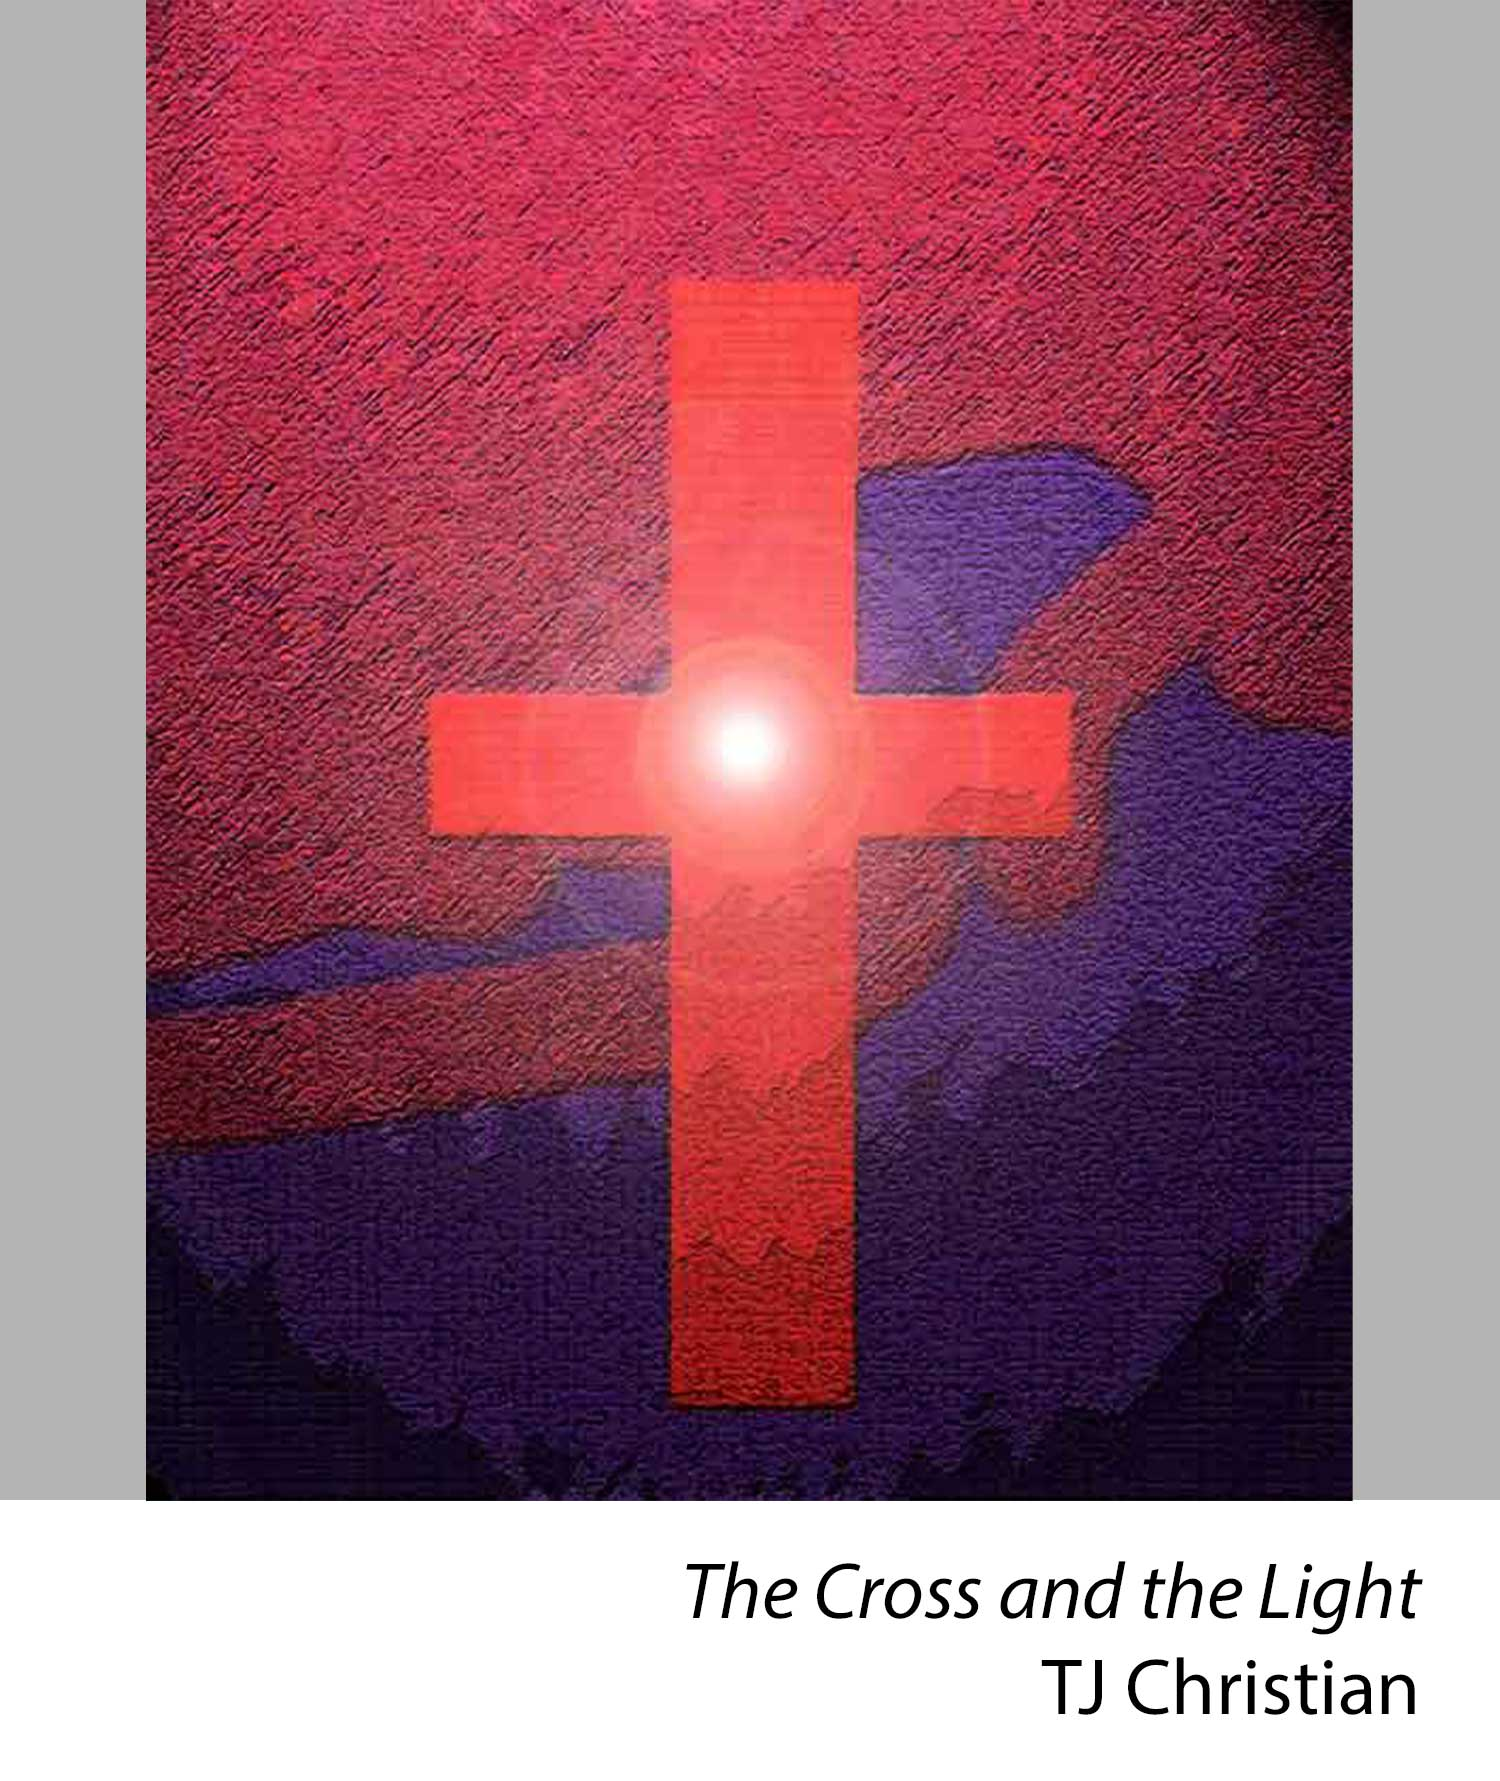 The Cross and the Light by TJ Christian